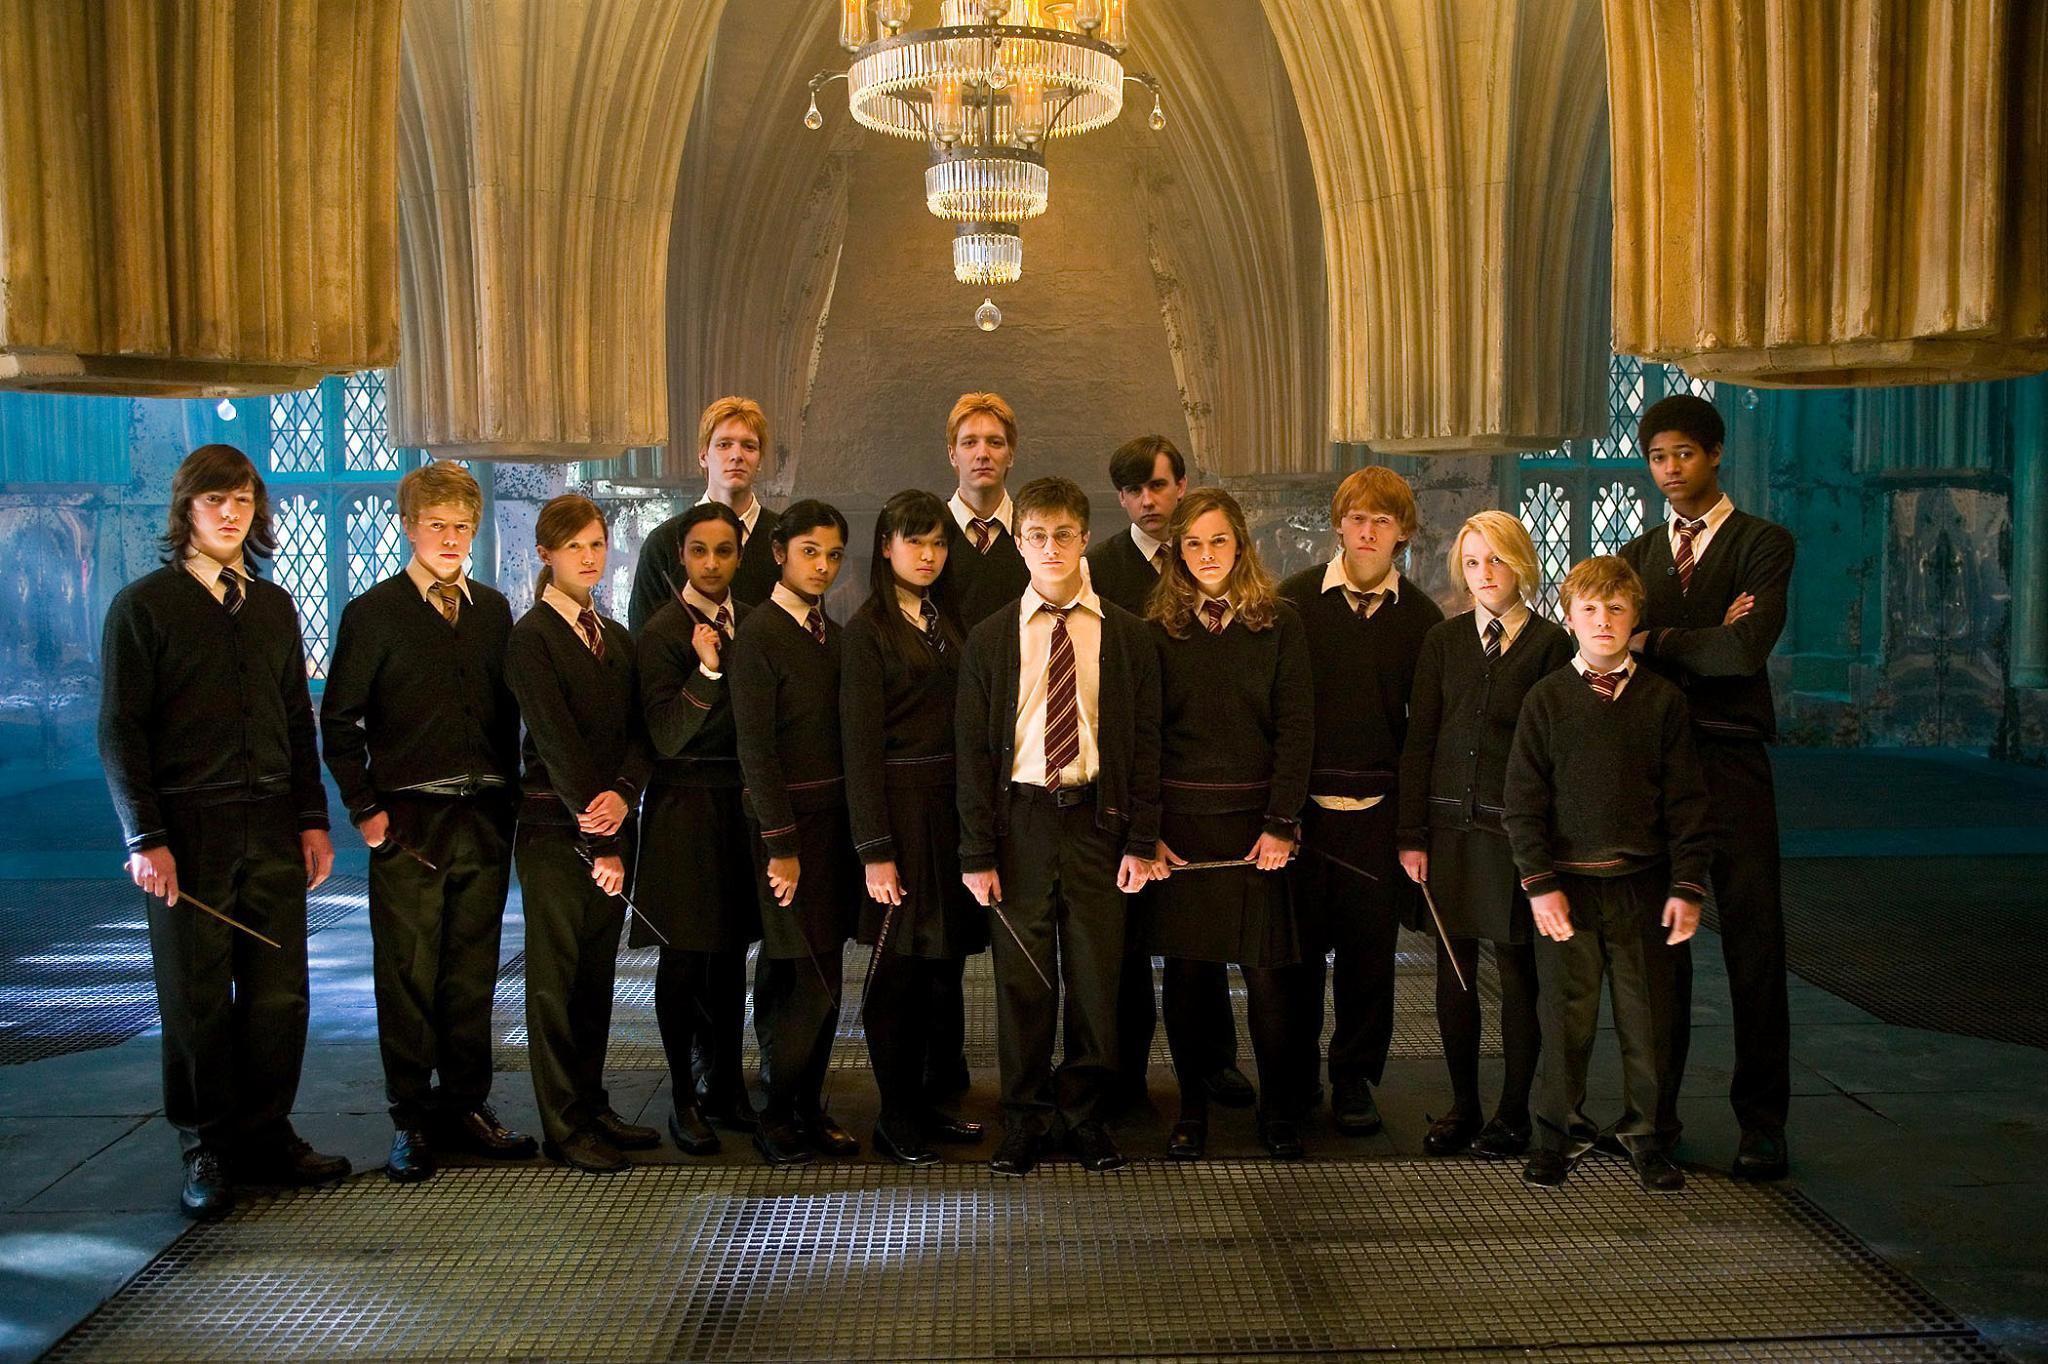 Are you a member of Dumbledore's Army?